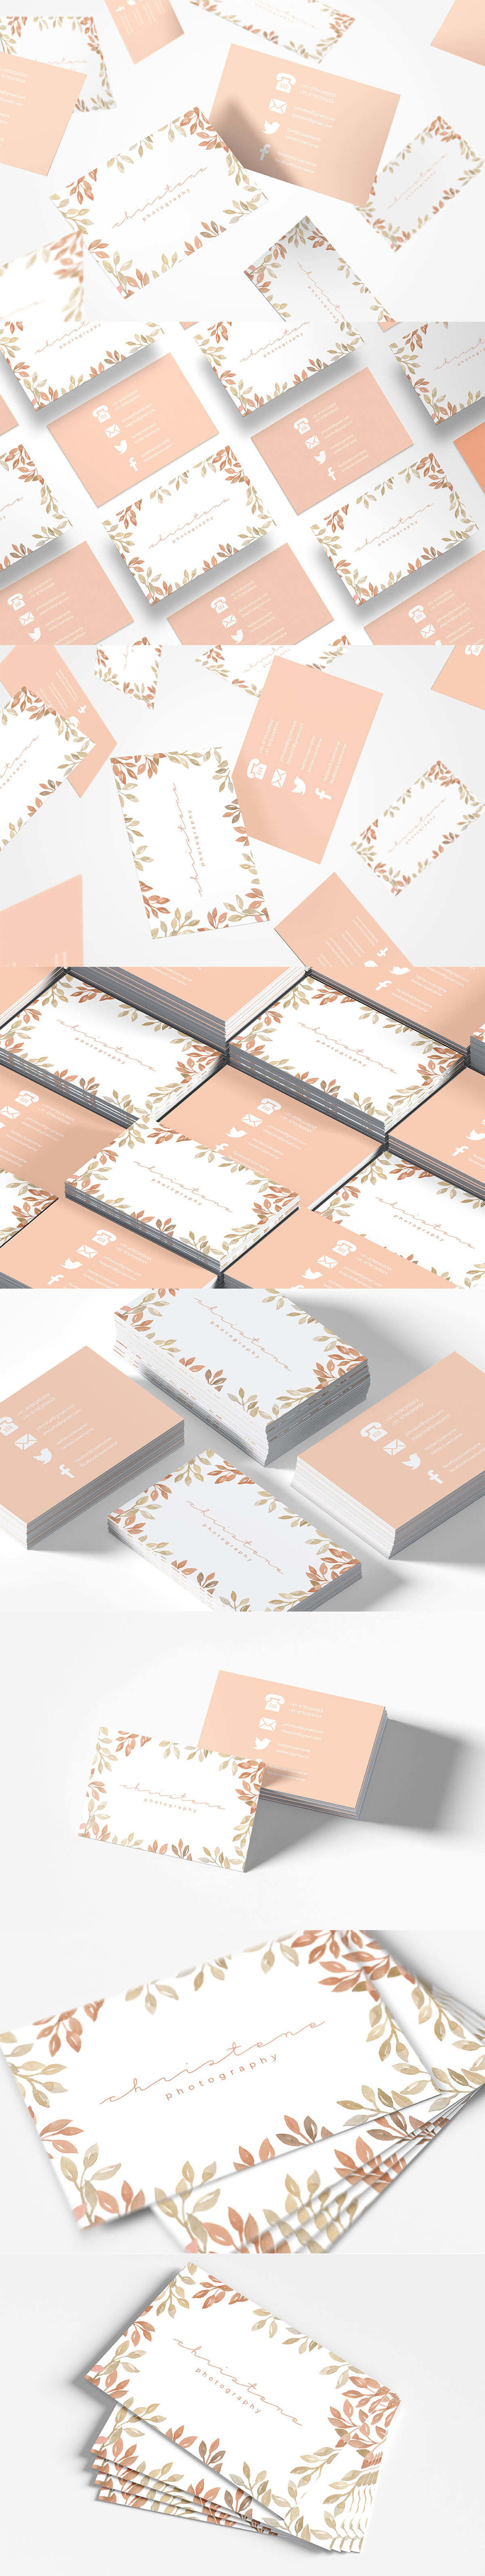 Free-Floral-Business-Card-Template.jpg